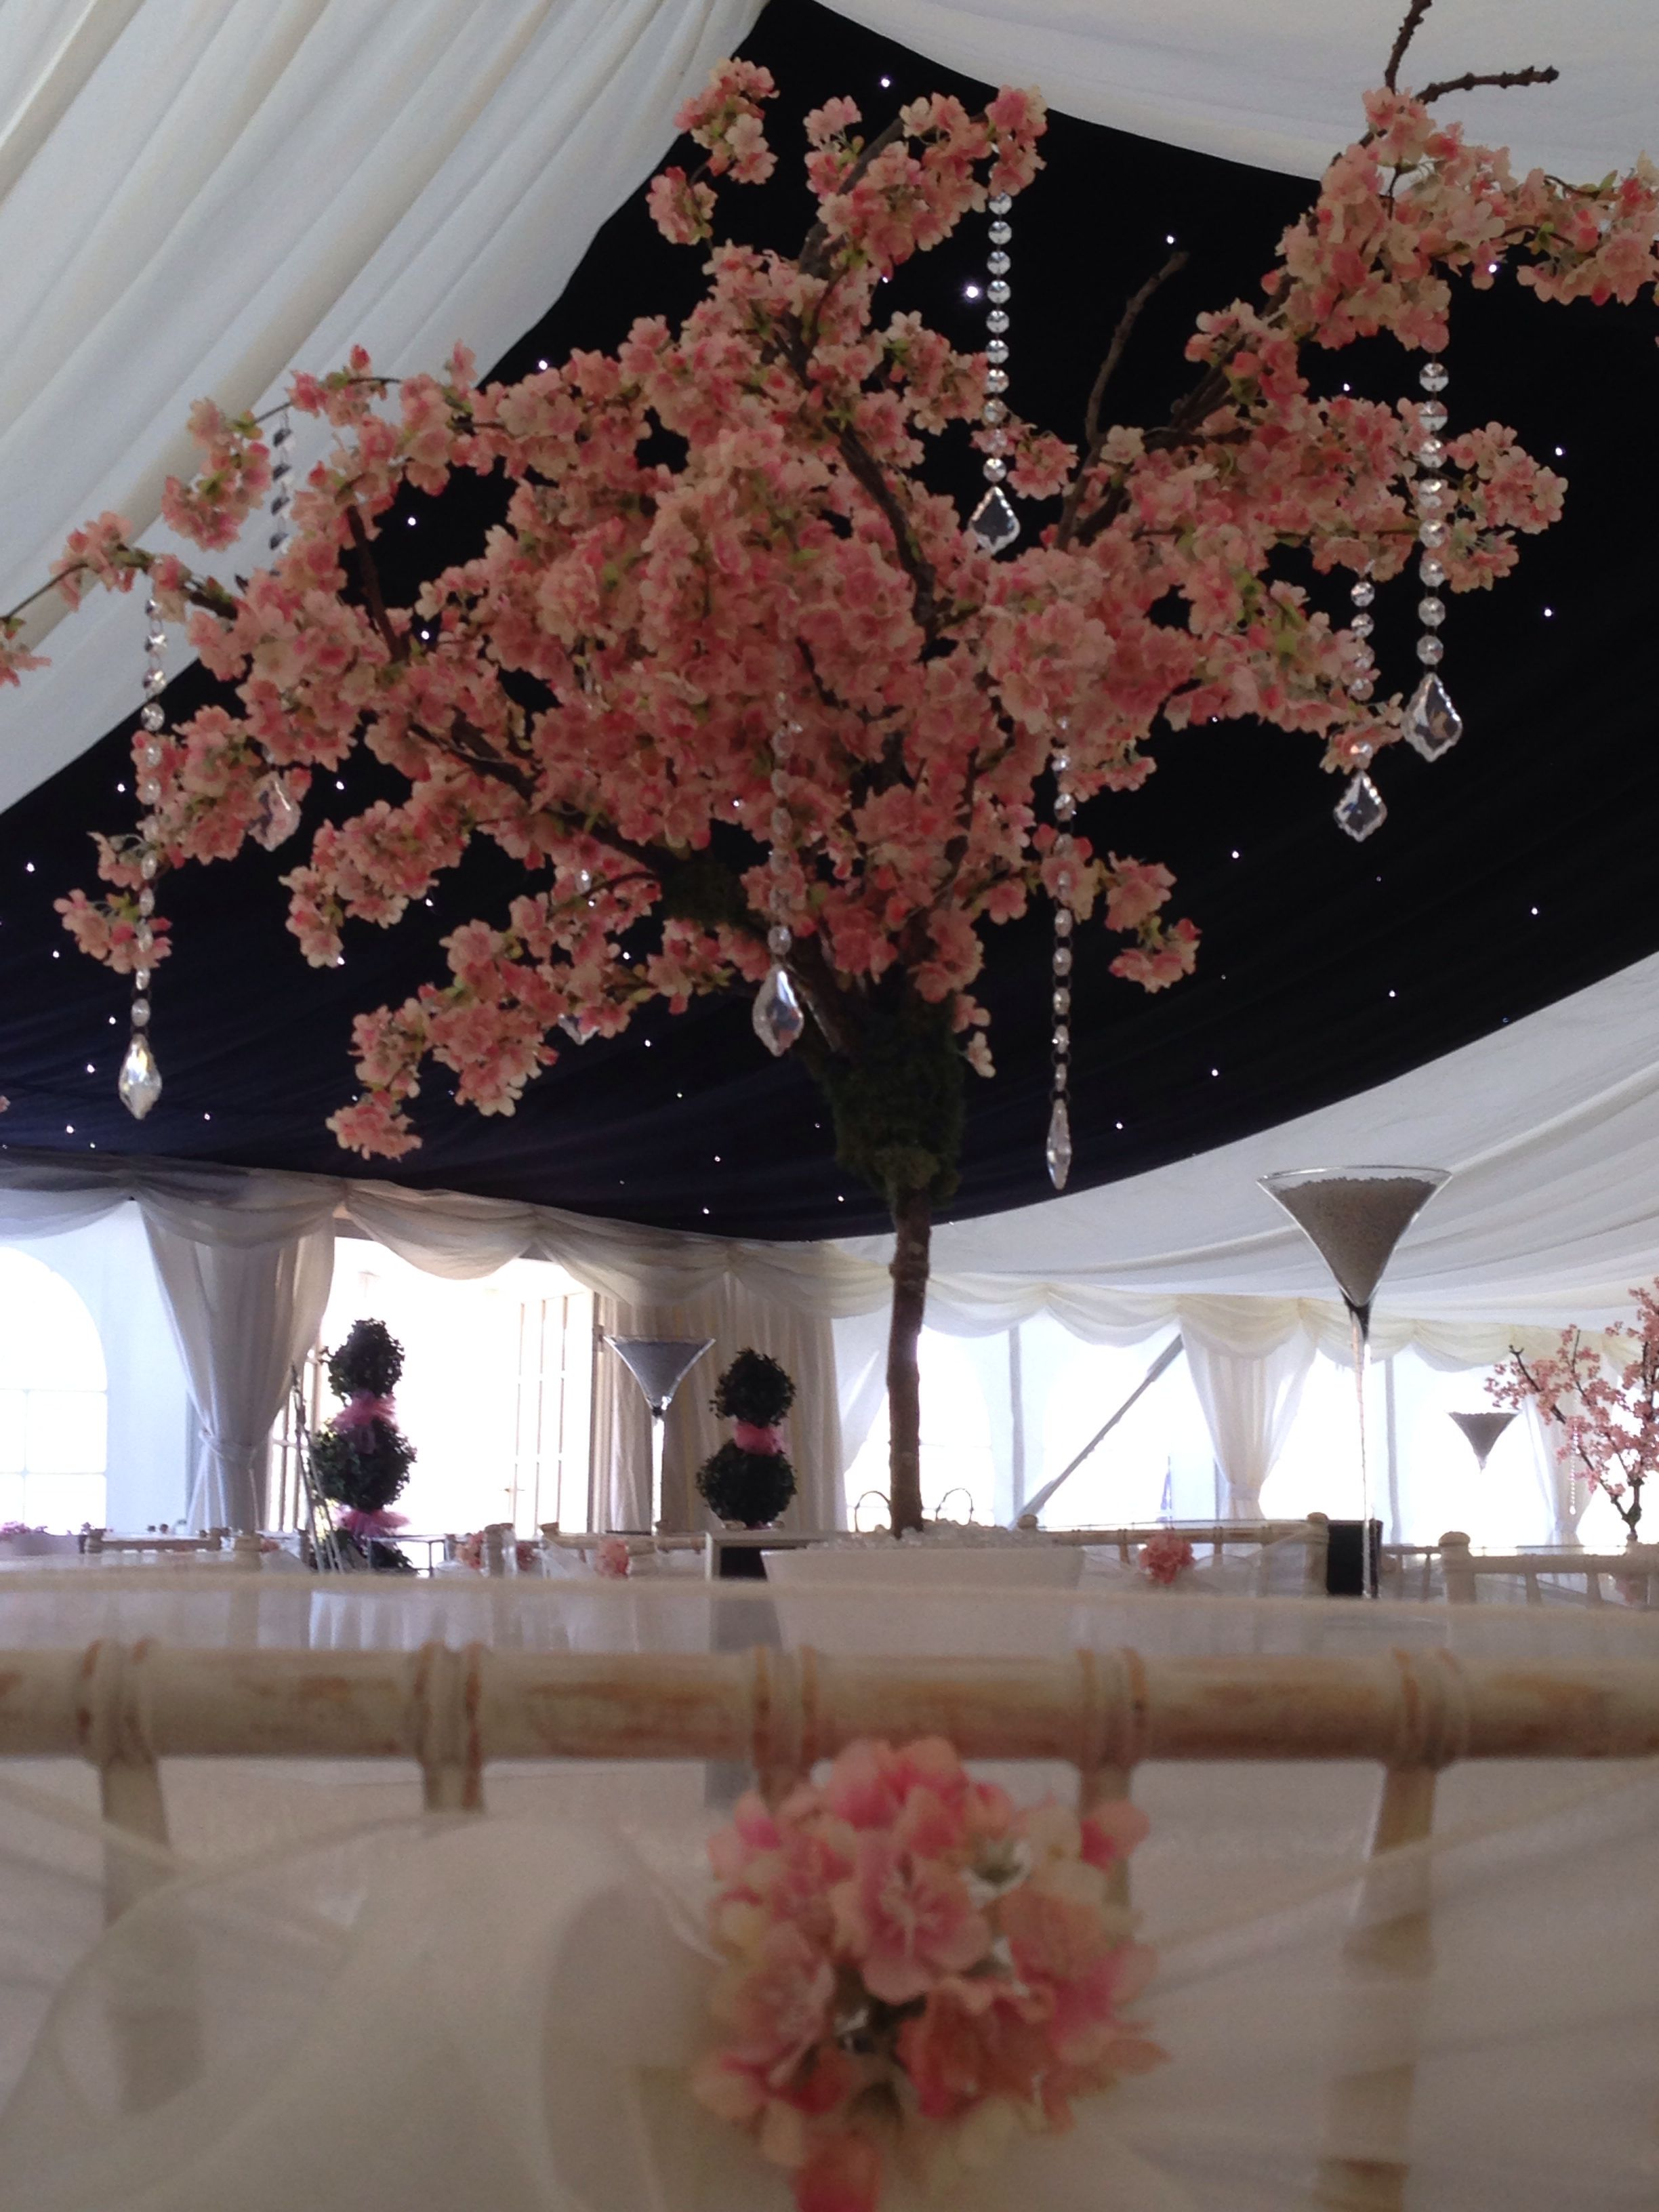 Pink Blossom In A Marquee Pink Blossom Tree Blossom Trees Pink Blossom